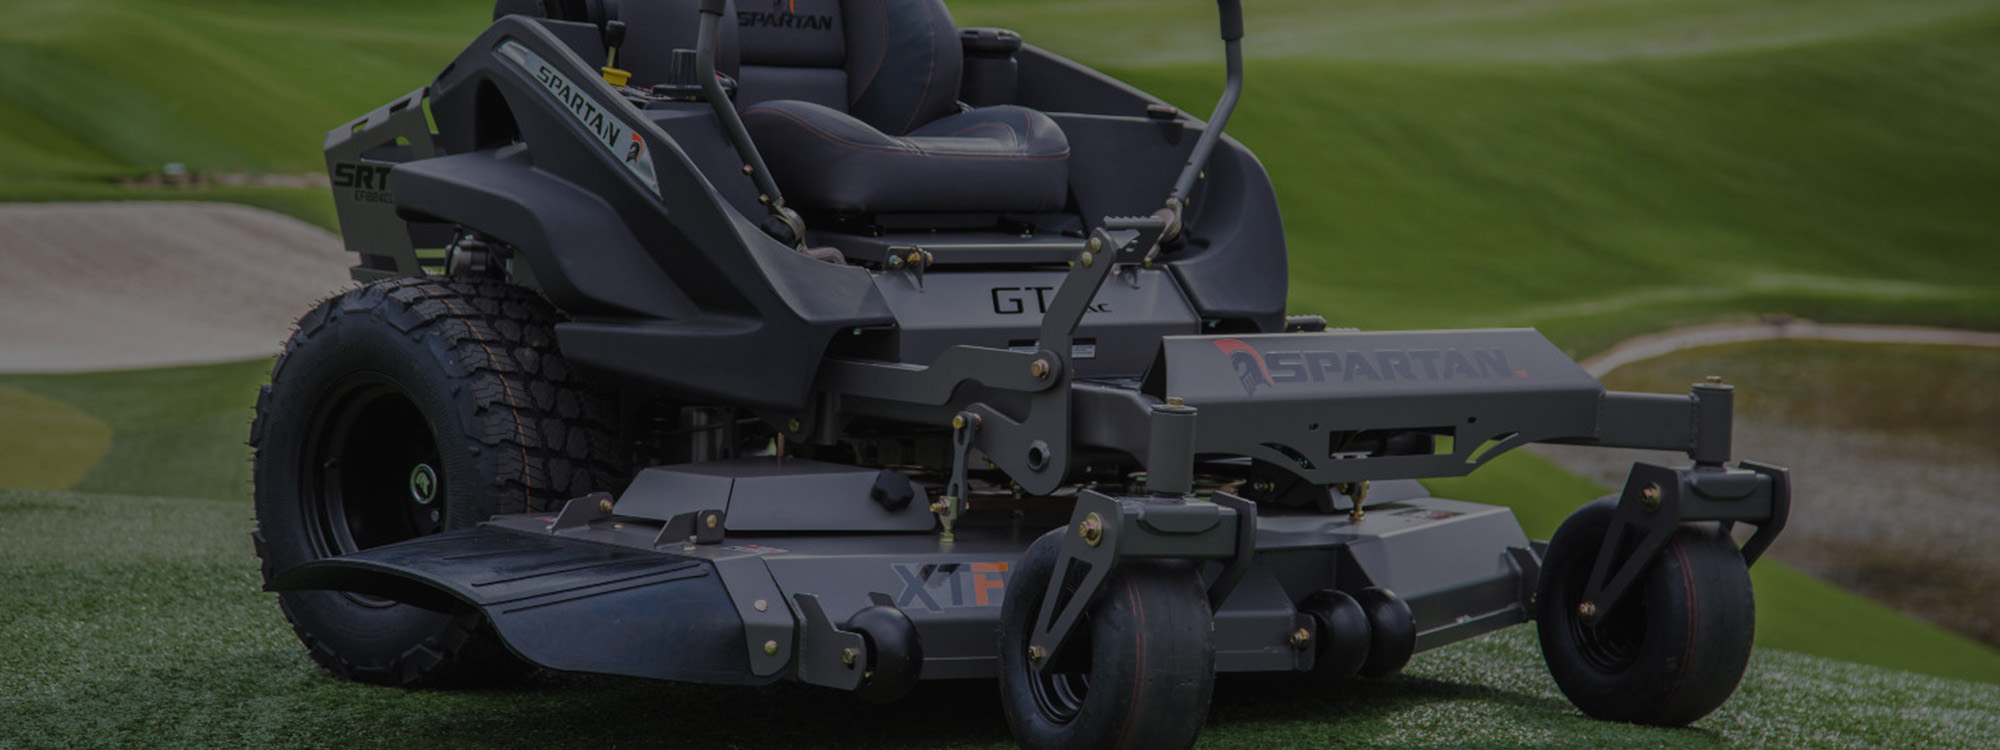 Spartan GT mower on golf course